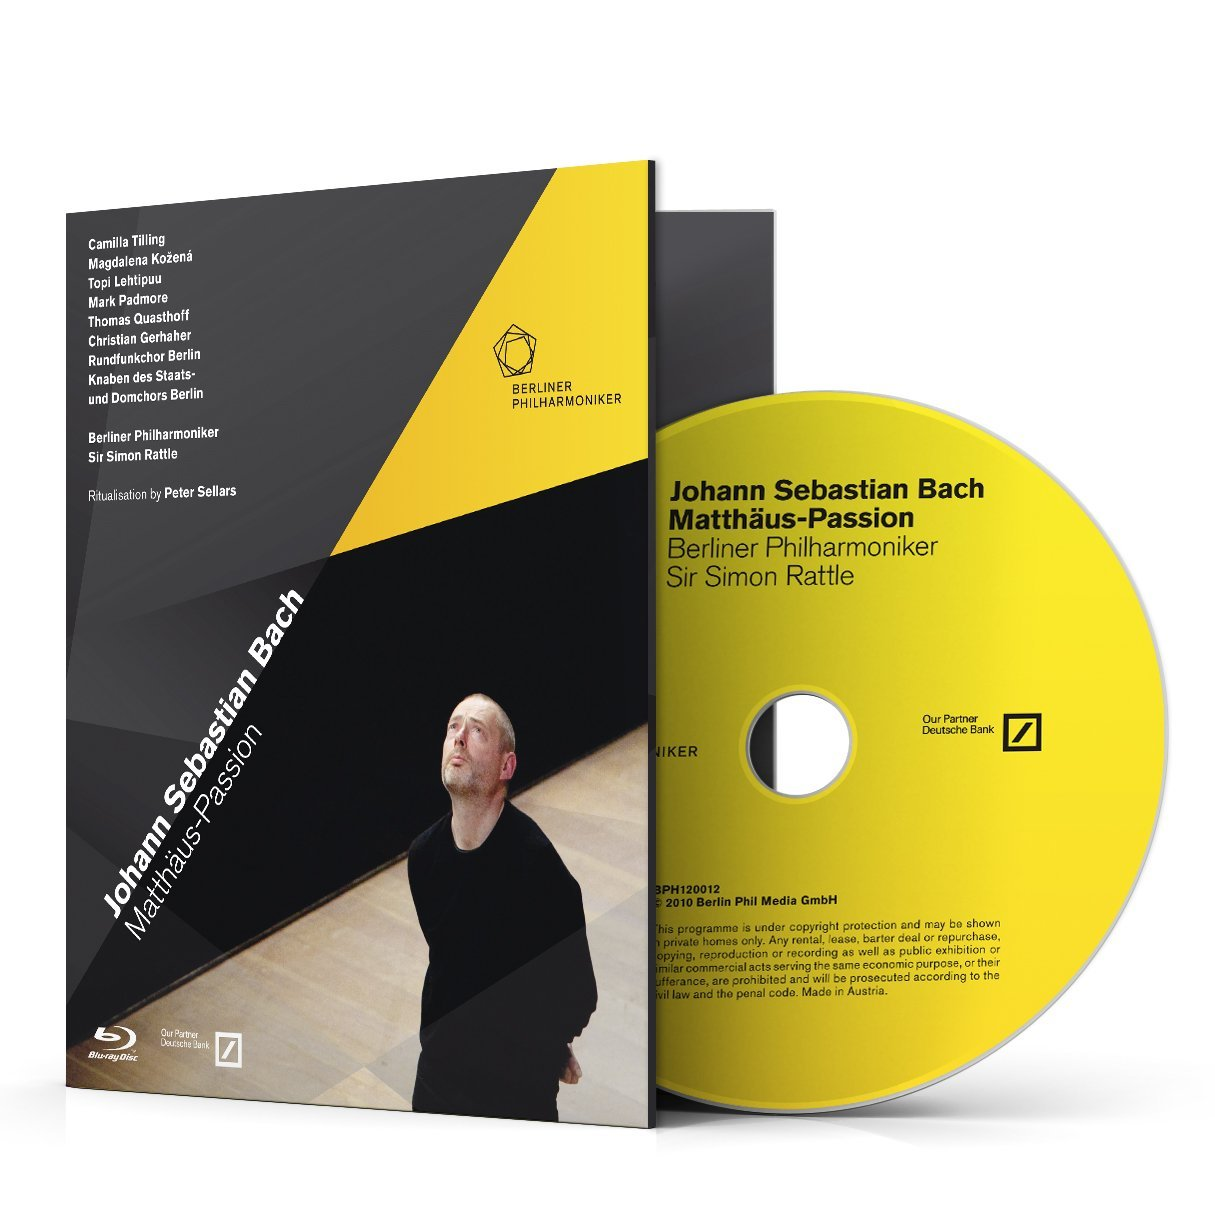 Matthaus Passion Bwv 244 Discography Part 8 Complete Recordings Topi Youtube 2010 2019